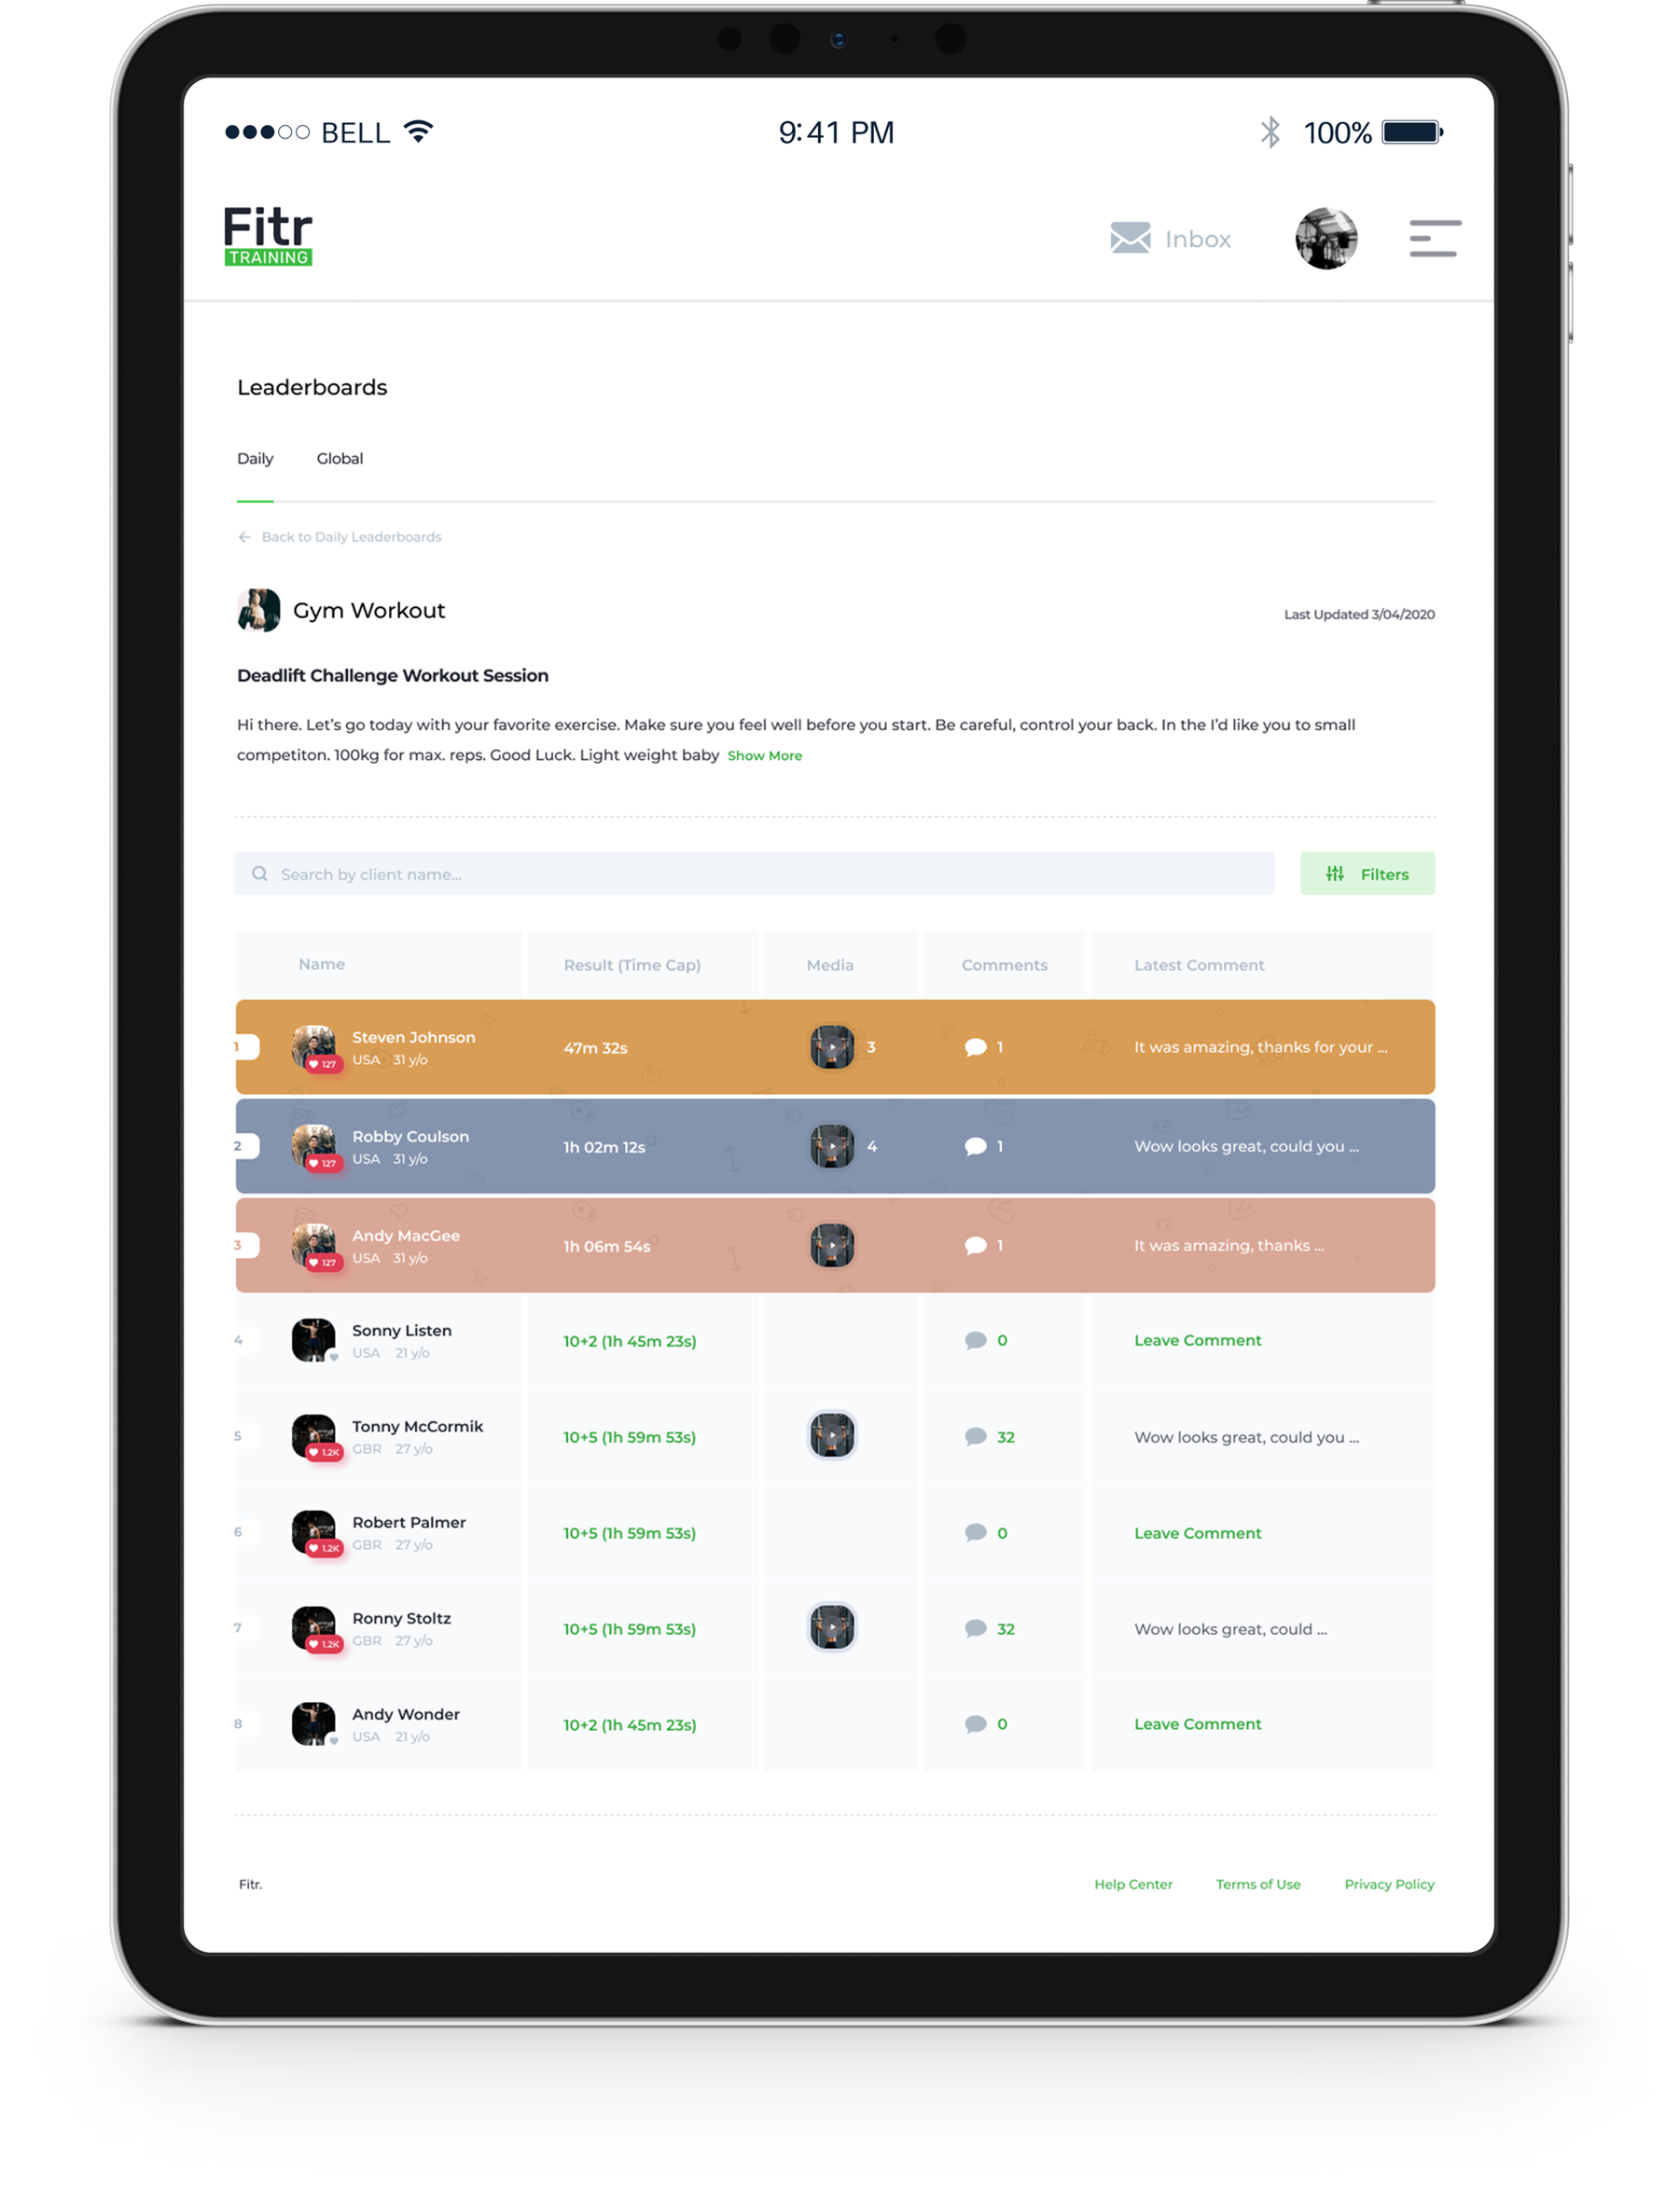 Online personal training software lkeaderboards image for managing clients performance remotely